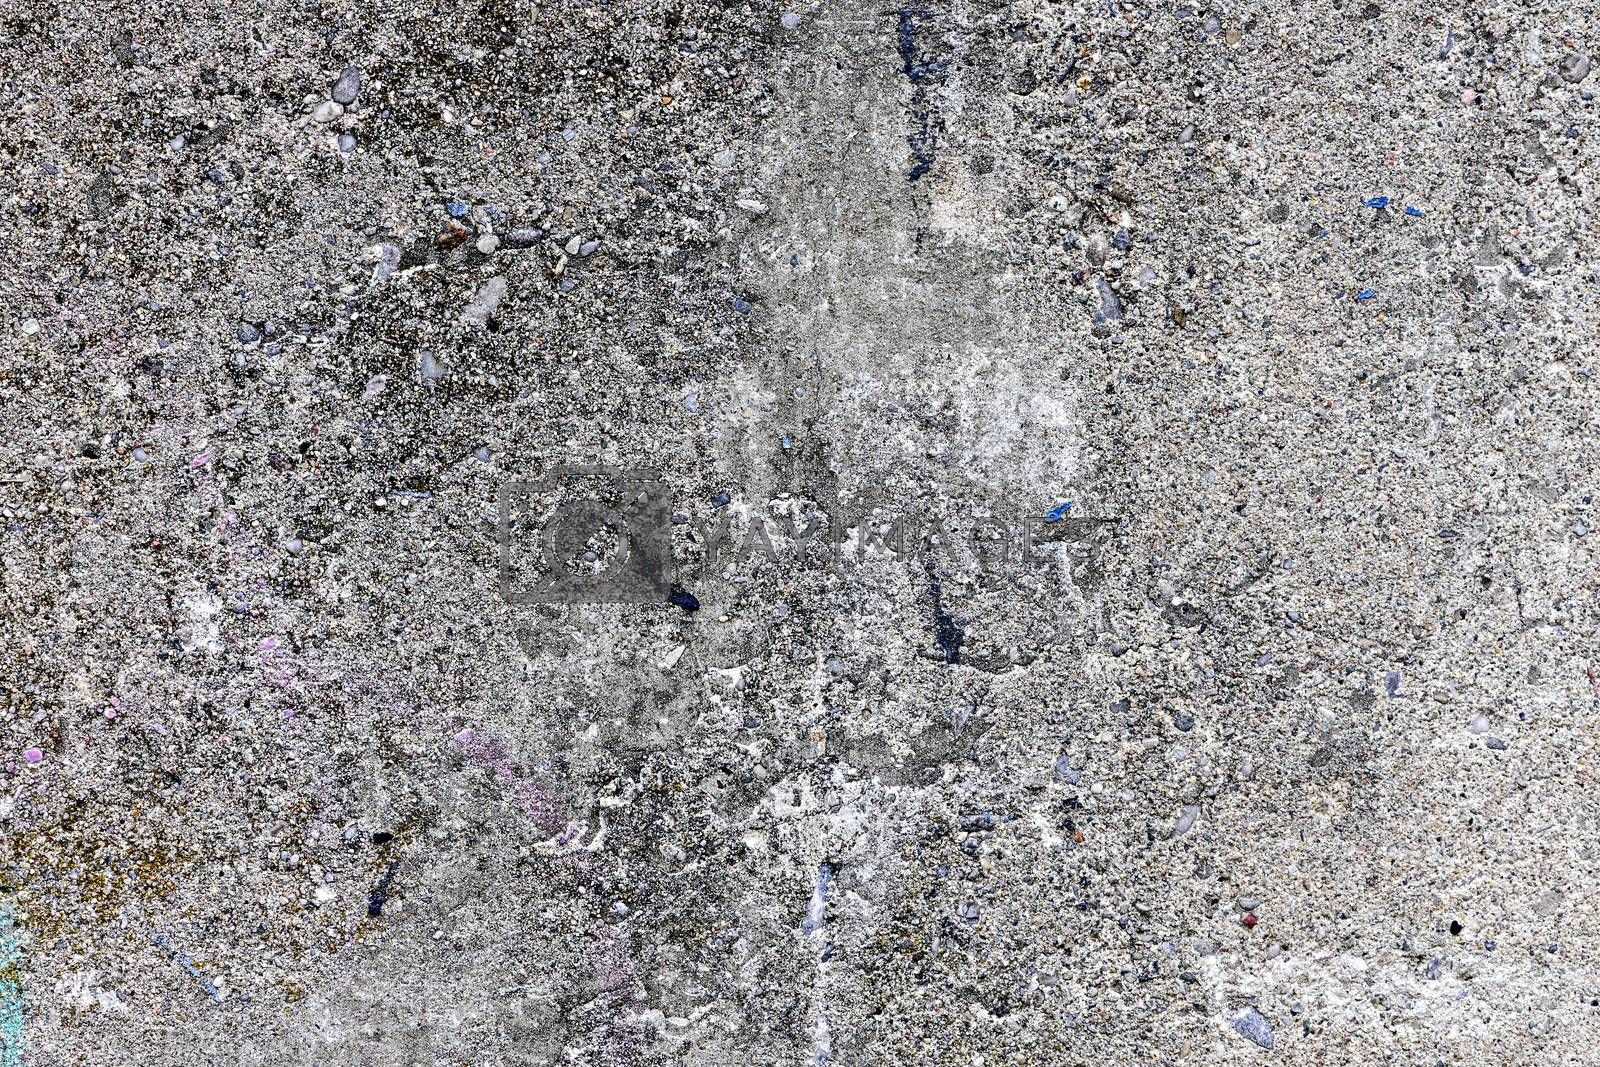 Background of gray concrete with textured surface